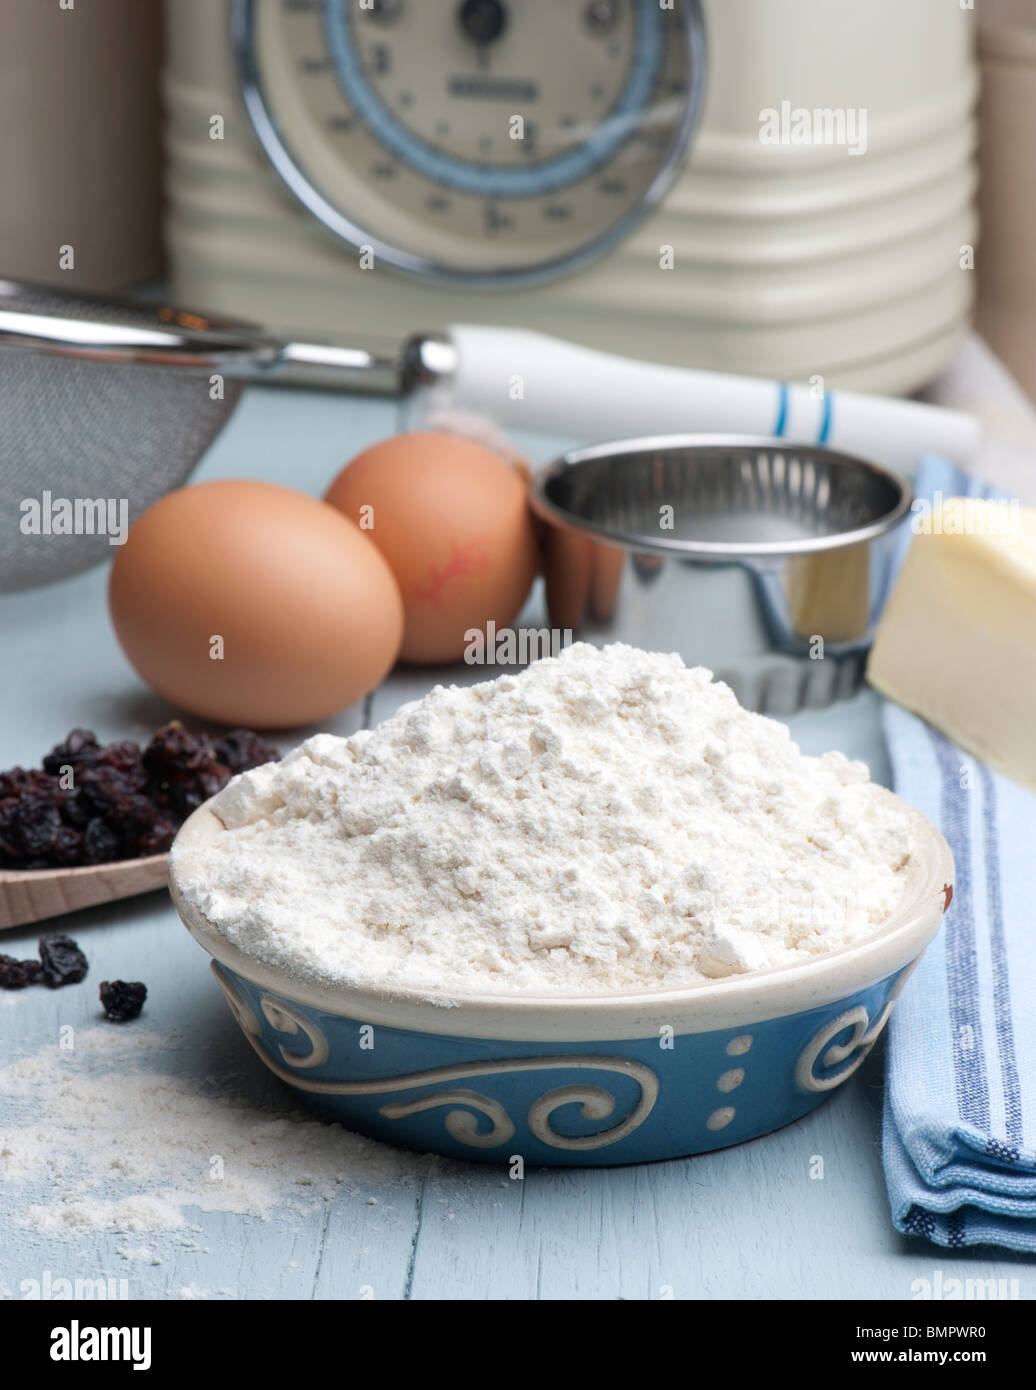 Ingredients Set Out For Making Scones, Flour, Butter, Eggs and Currants - Stock Image